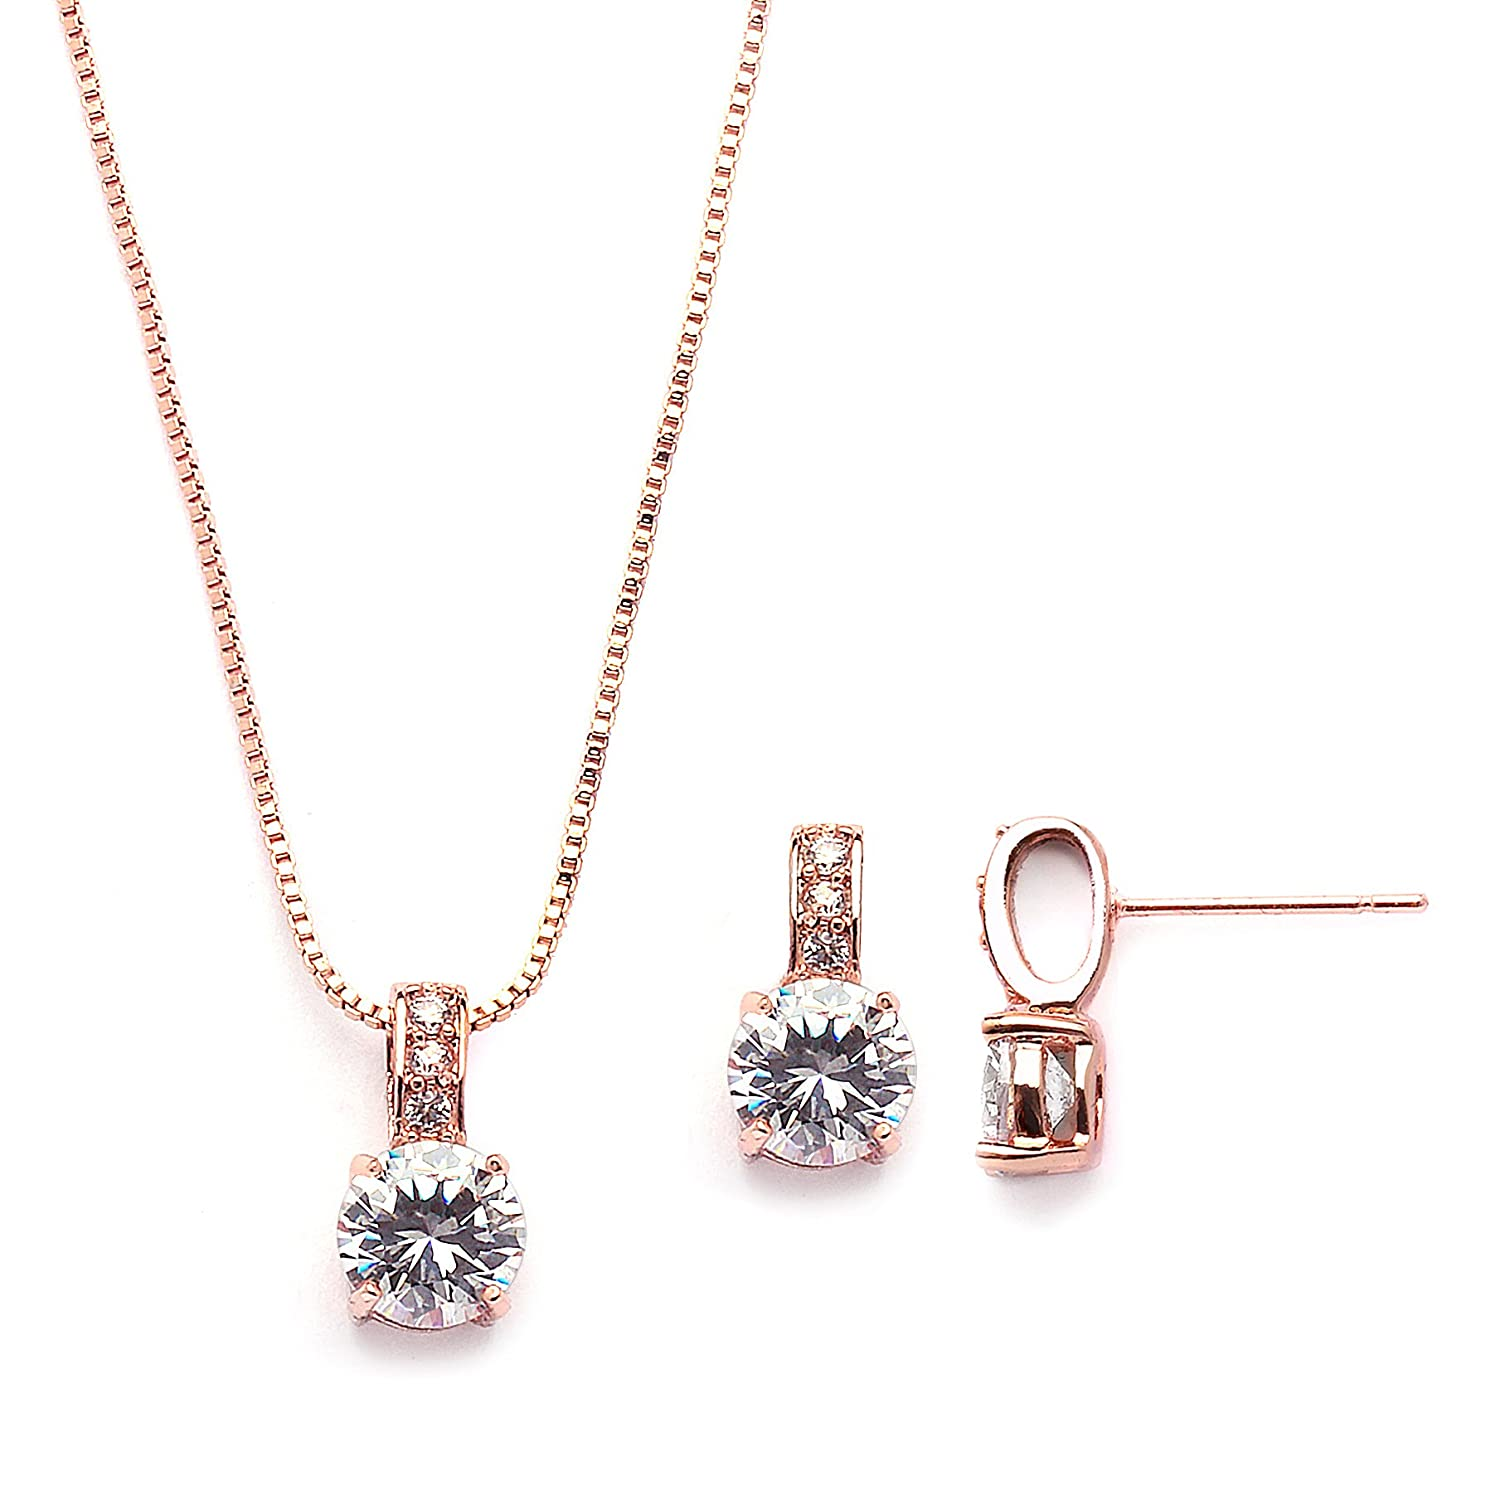 Mariell Rose Gold Round-Cut Cubic Zirconia Necklace Earrings Set for Brides, Bridesmaids & Everyday Wear 4551S-RG